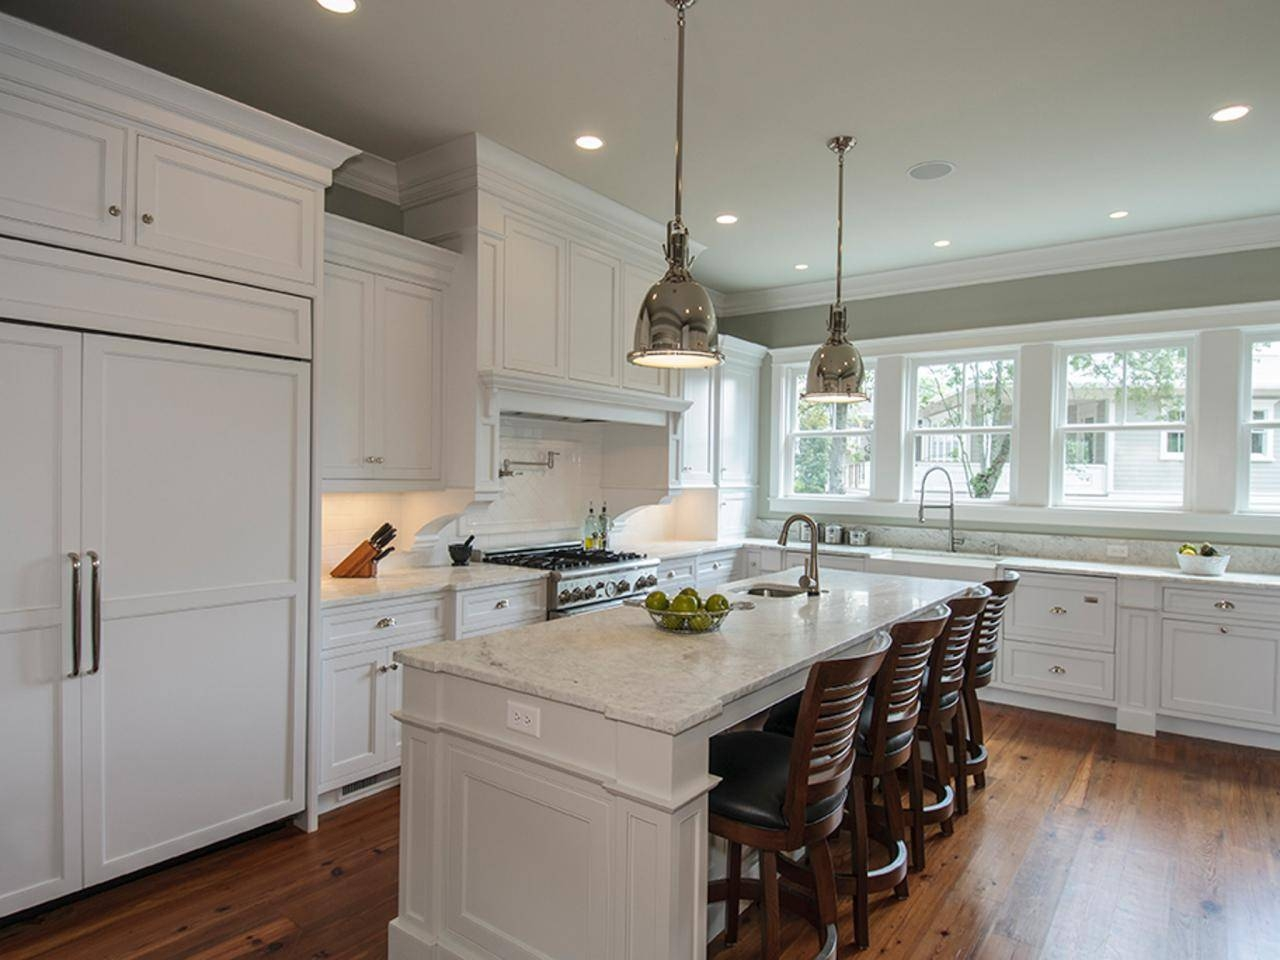 Kitchen Pendant Lighting (View 9 of 15)